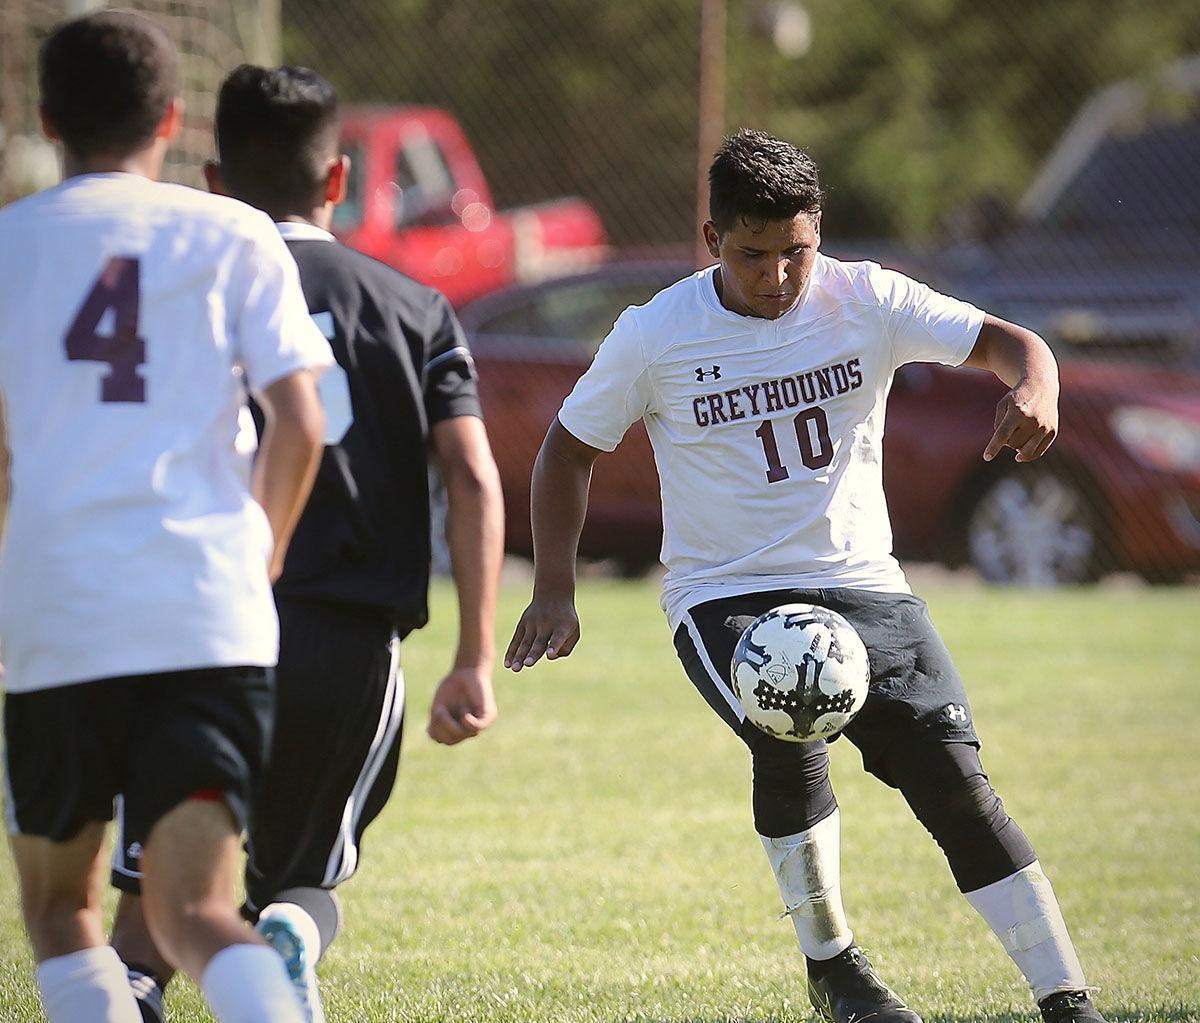 David Gardner's hat trick leads Middle Township past